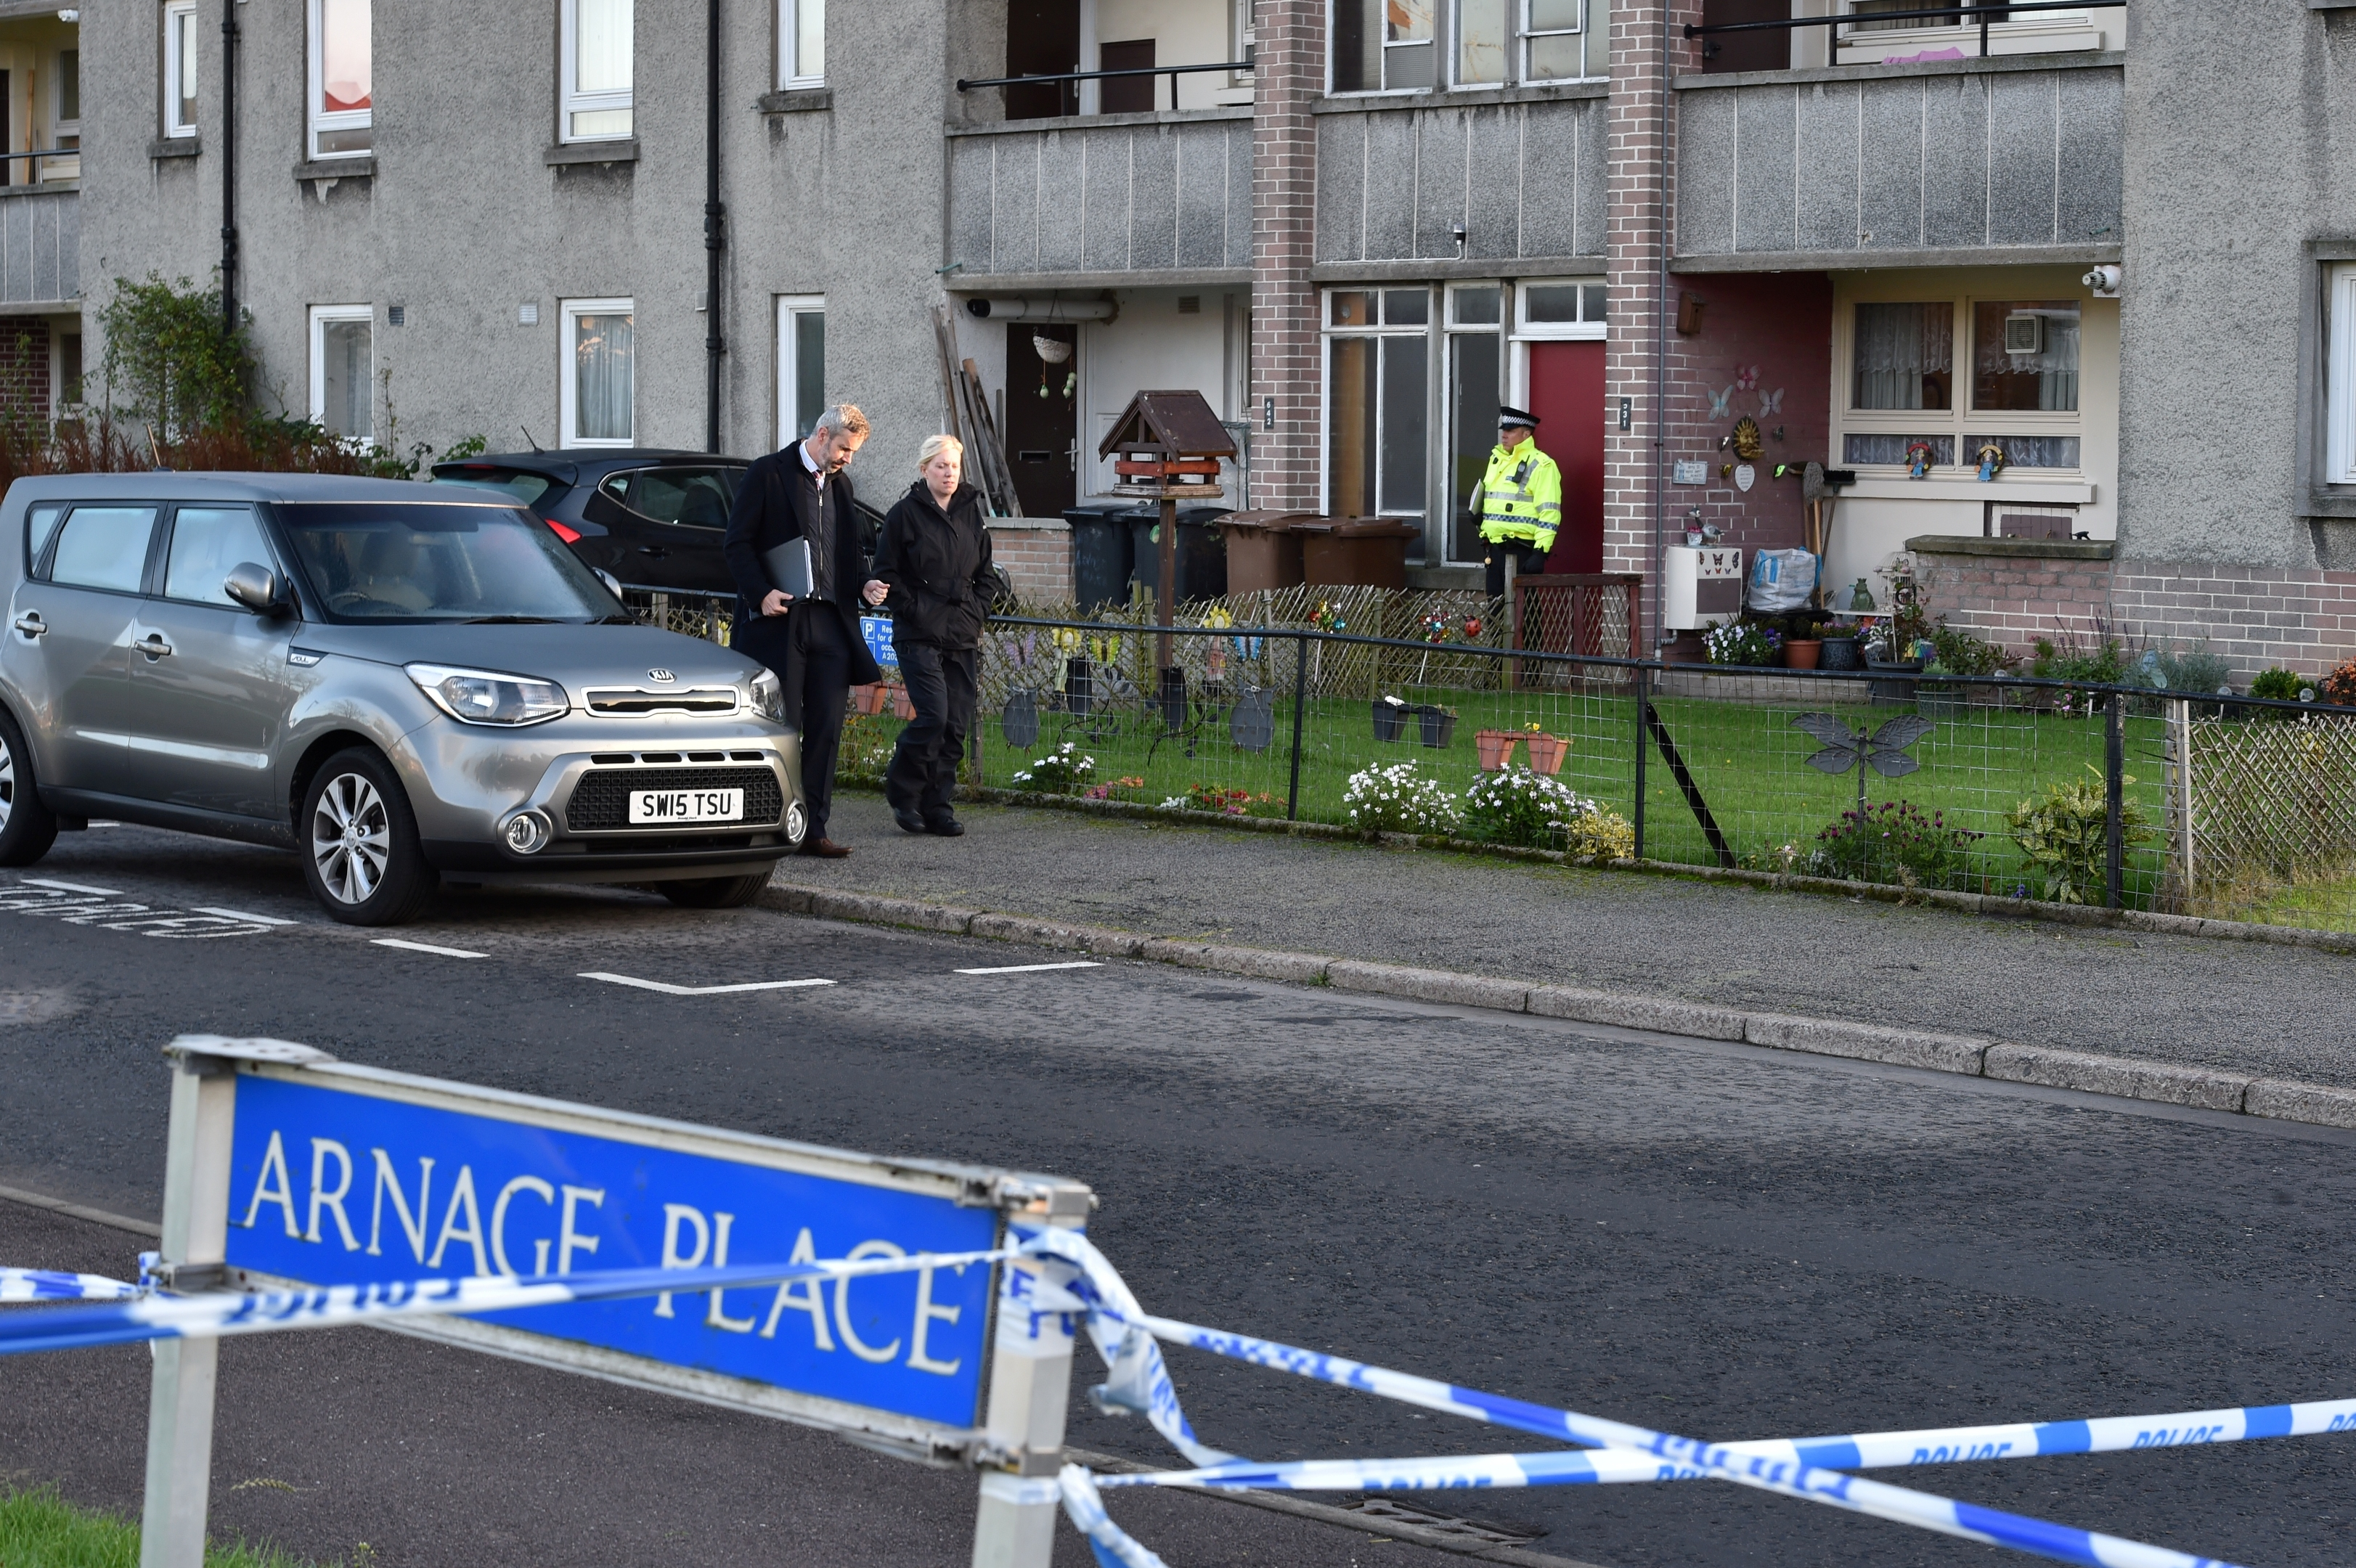 A heavy police presence at Arnage Place, Mastrick.